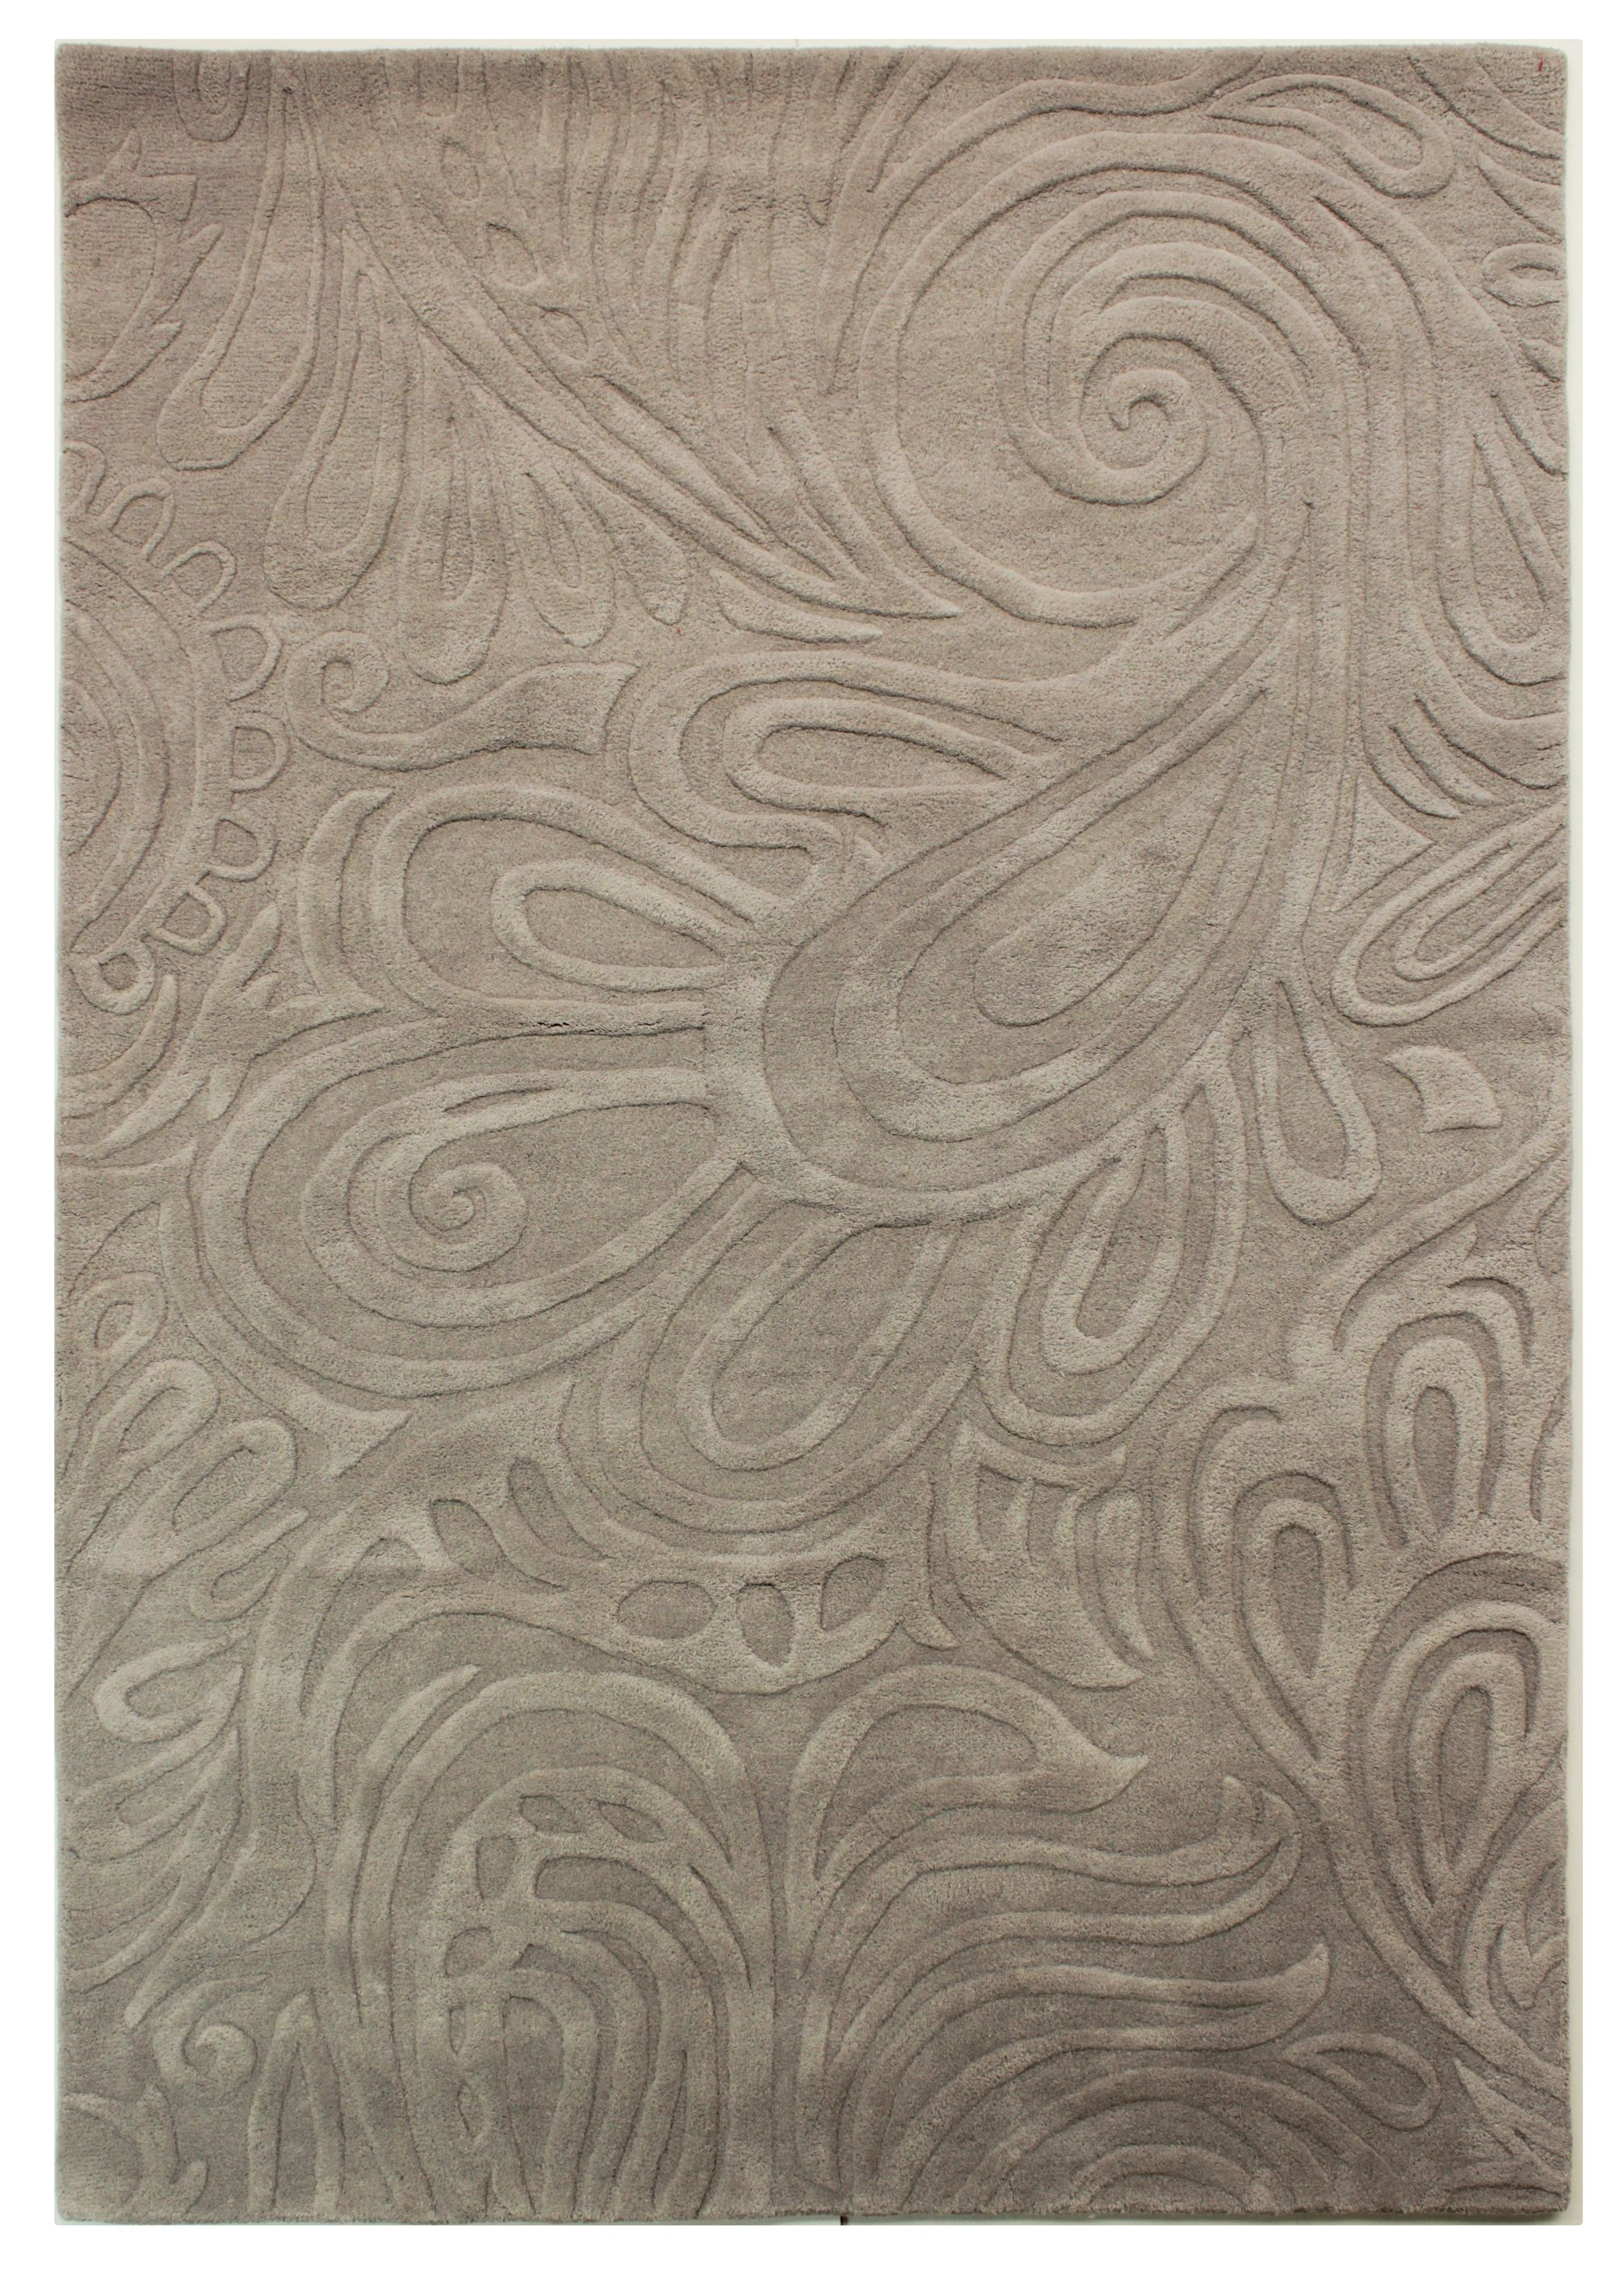 Flair Rugs Flair Rugs Carved paisley grey rug 120x170cm